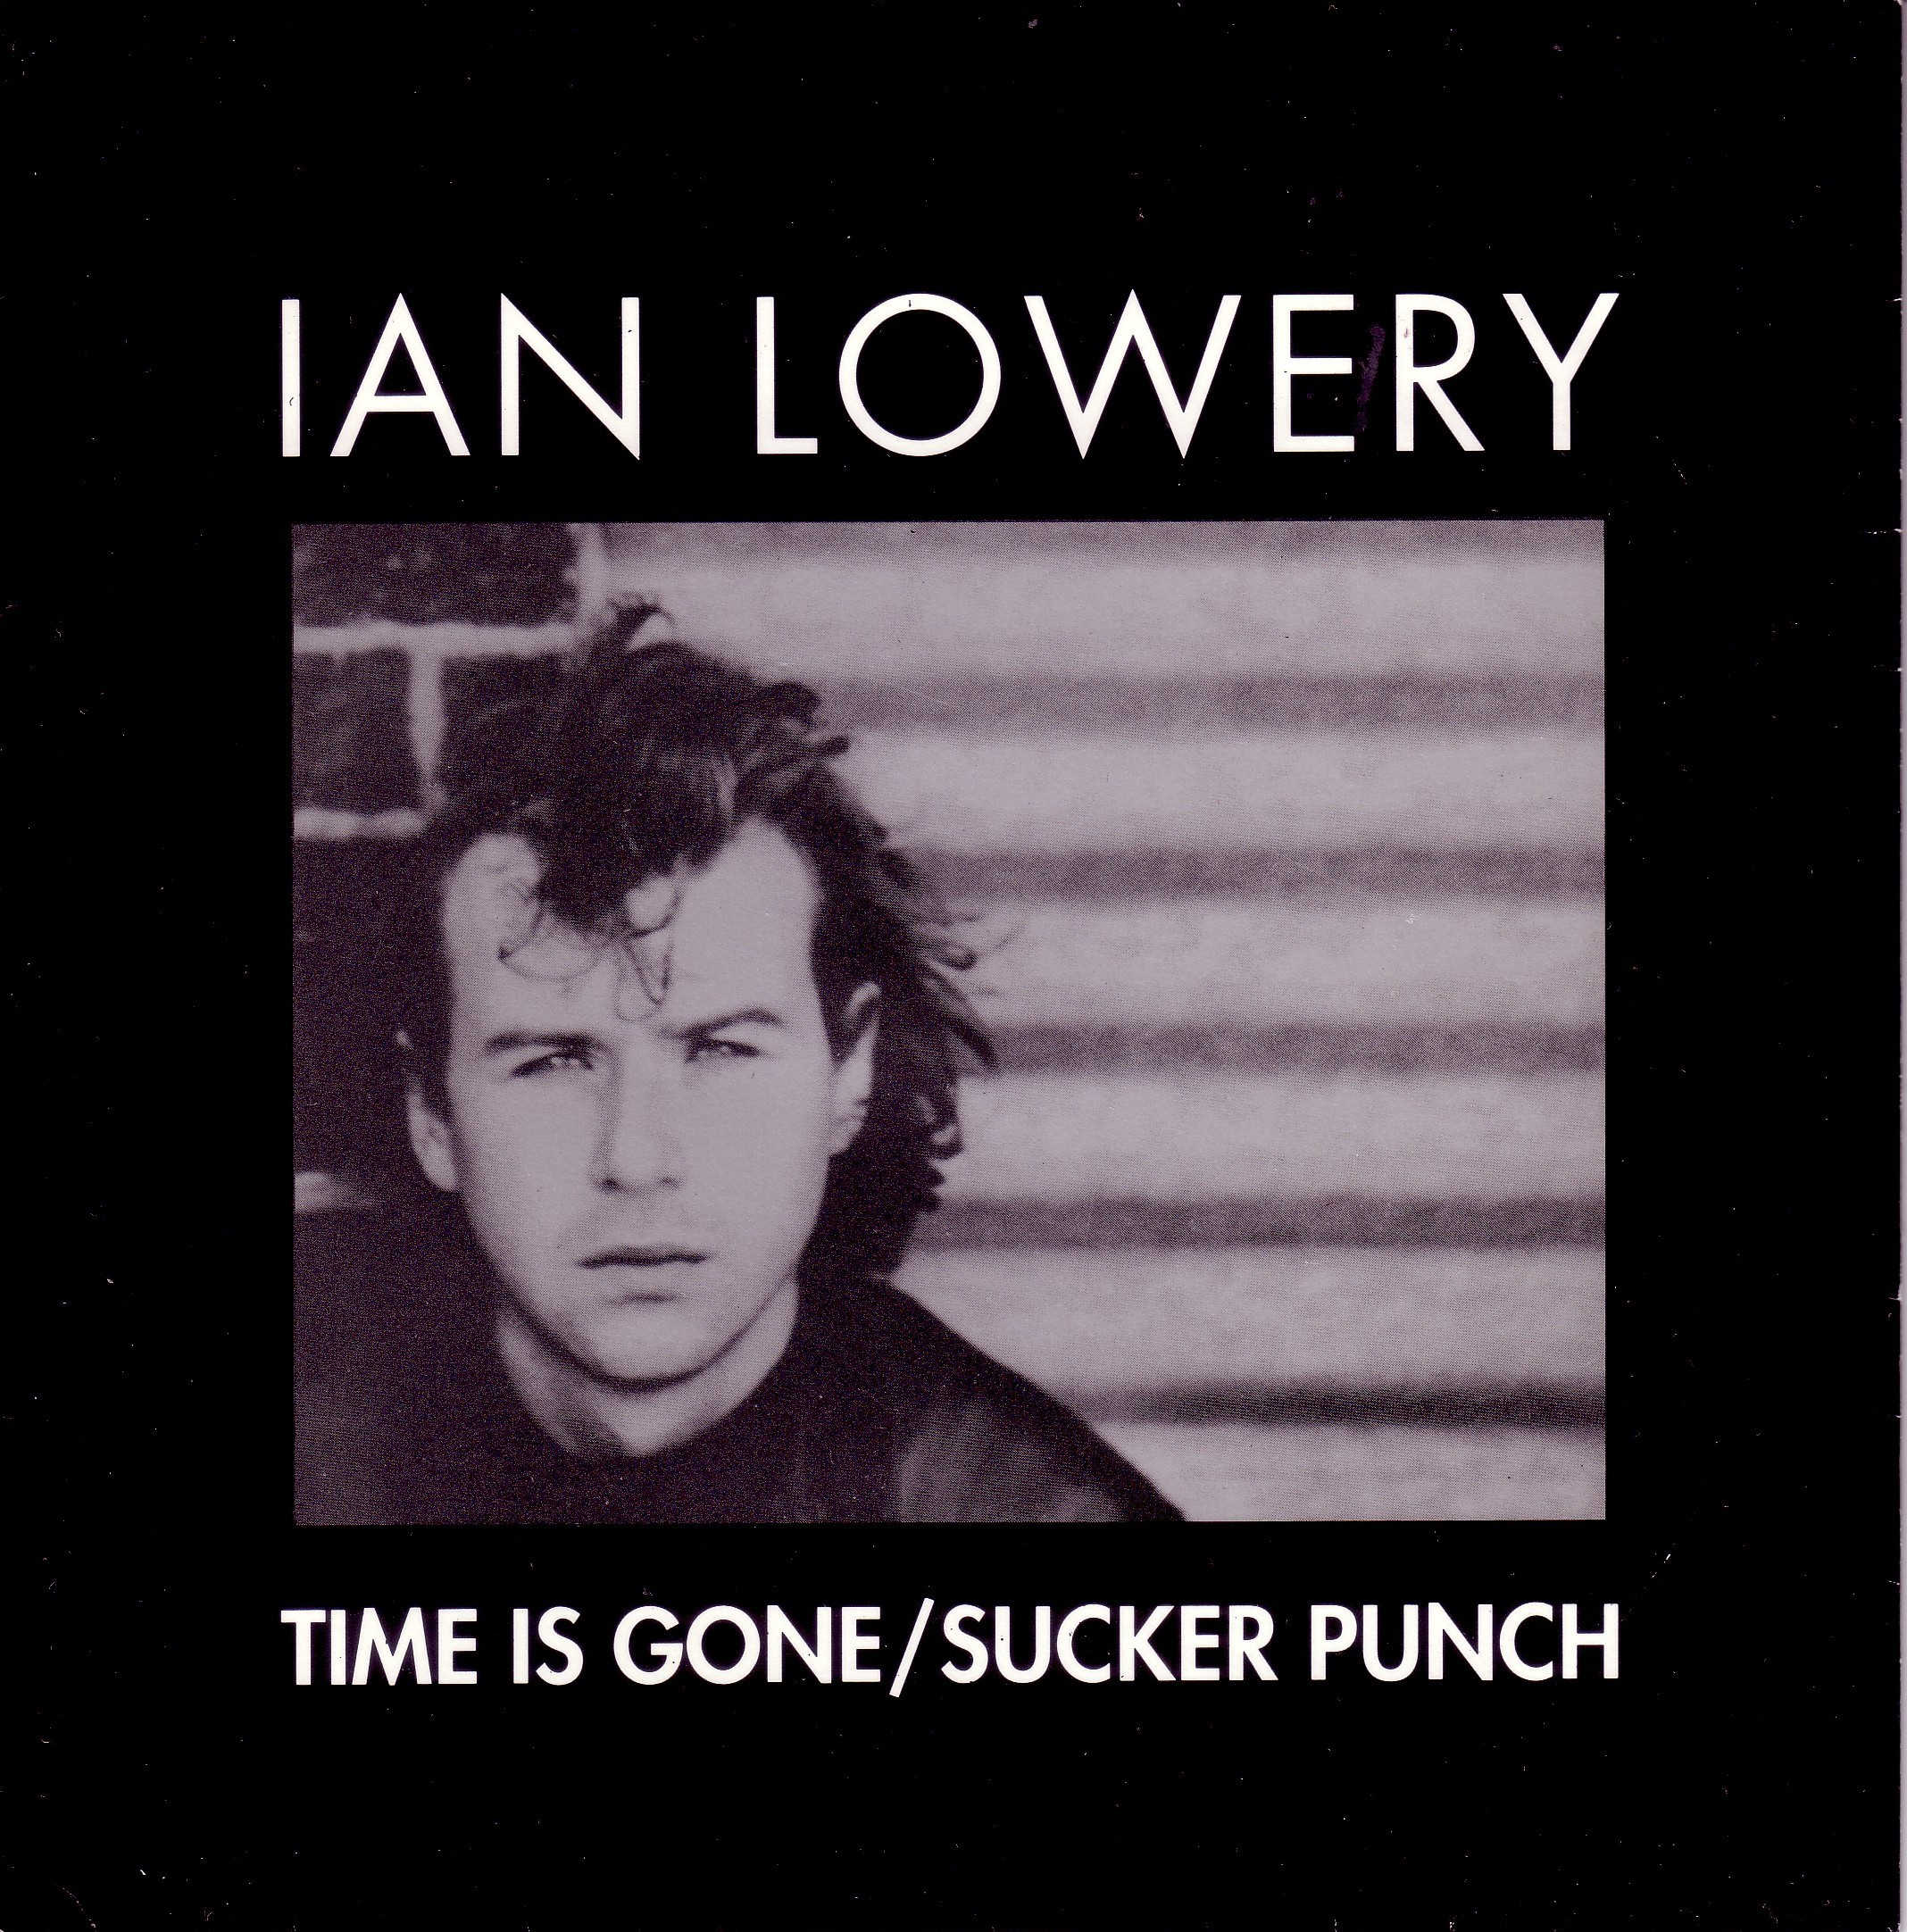 Ian Lowery Time Is Gone